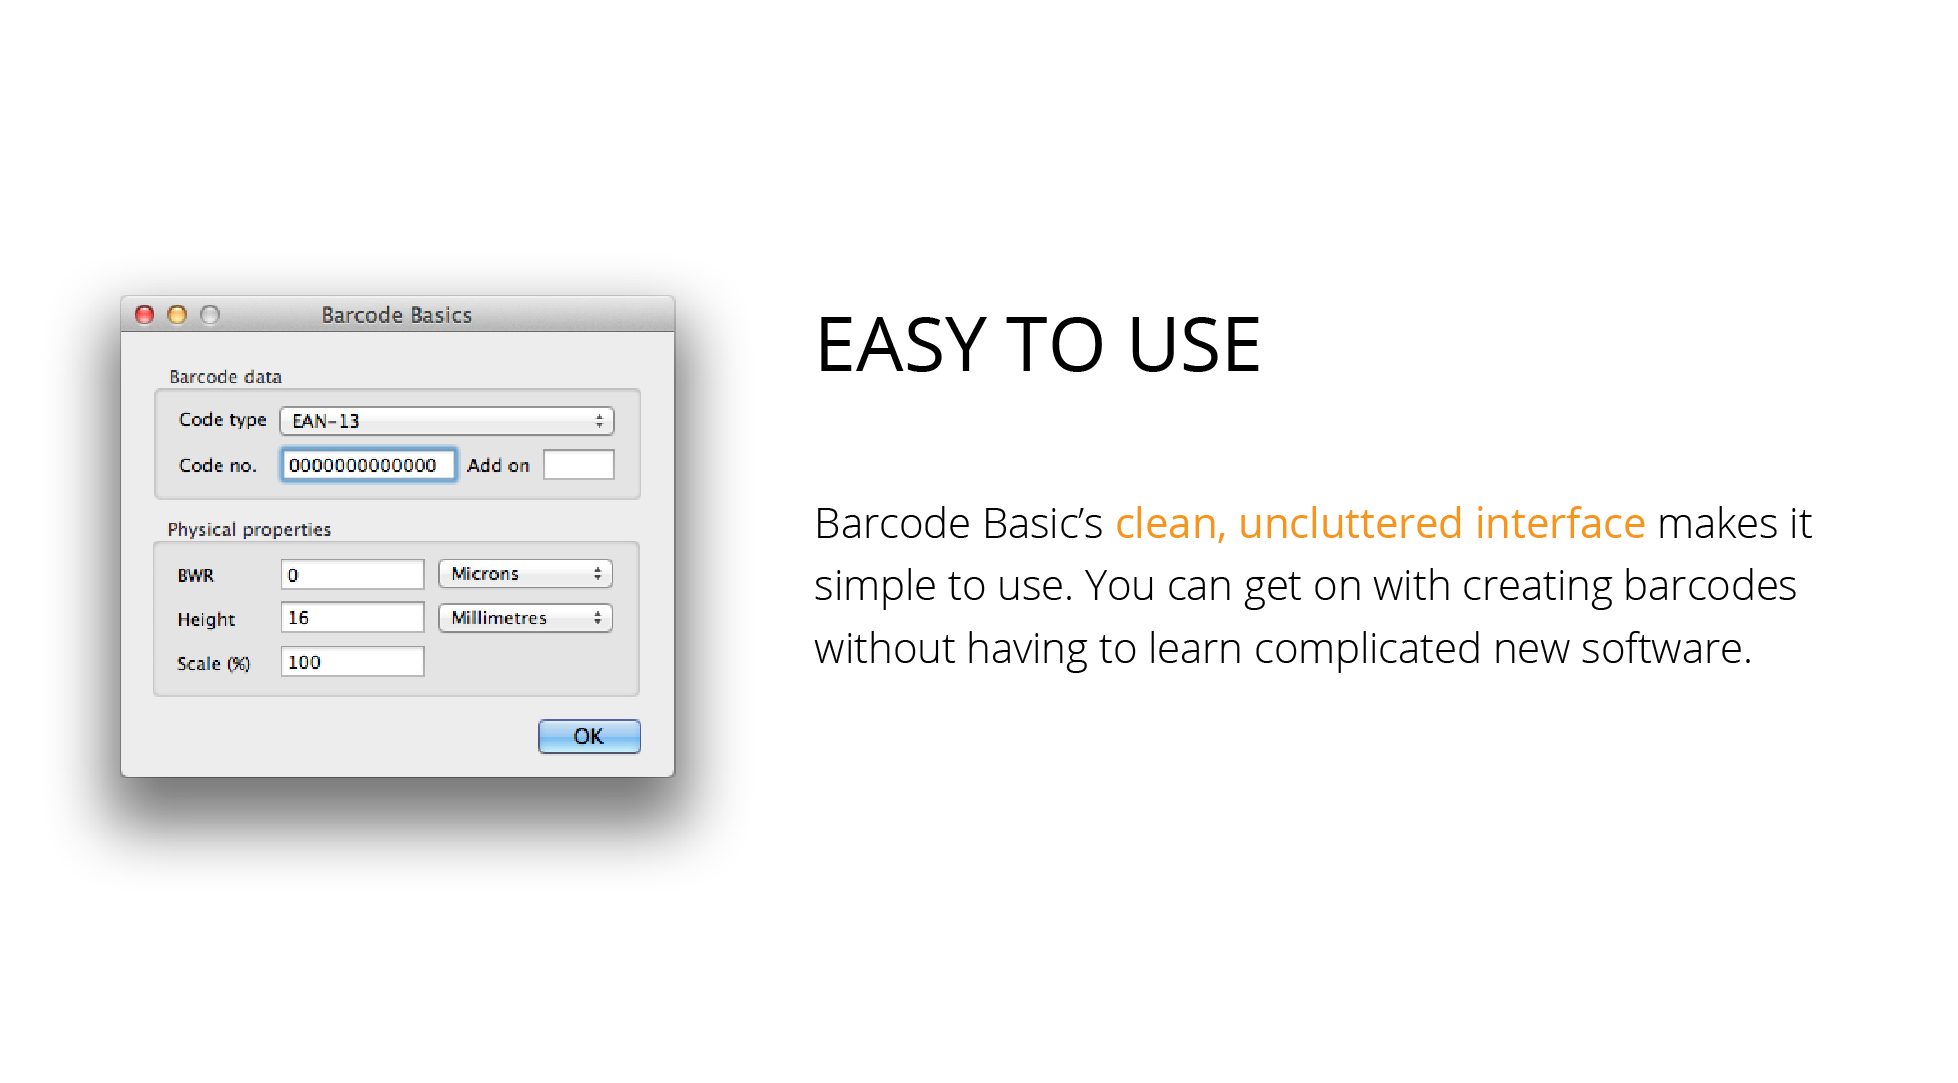 Easy to use mac barcode software